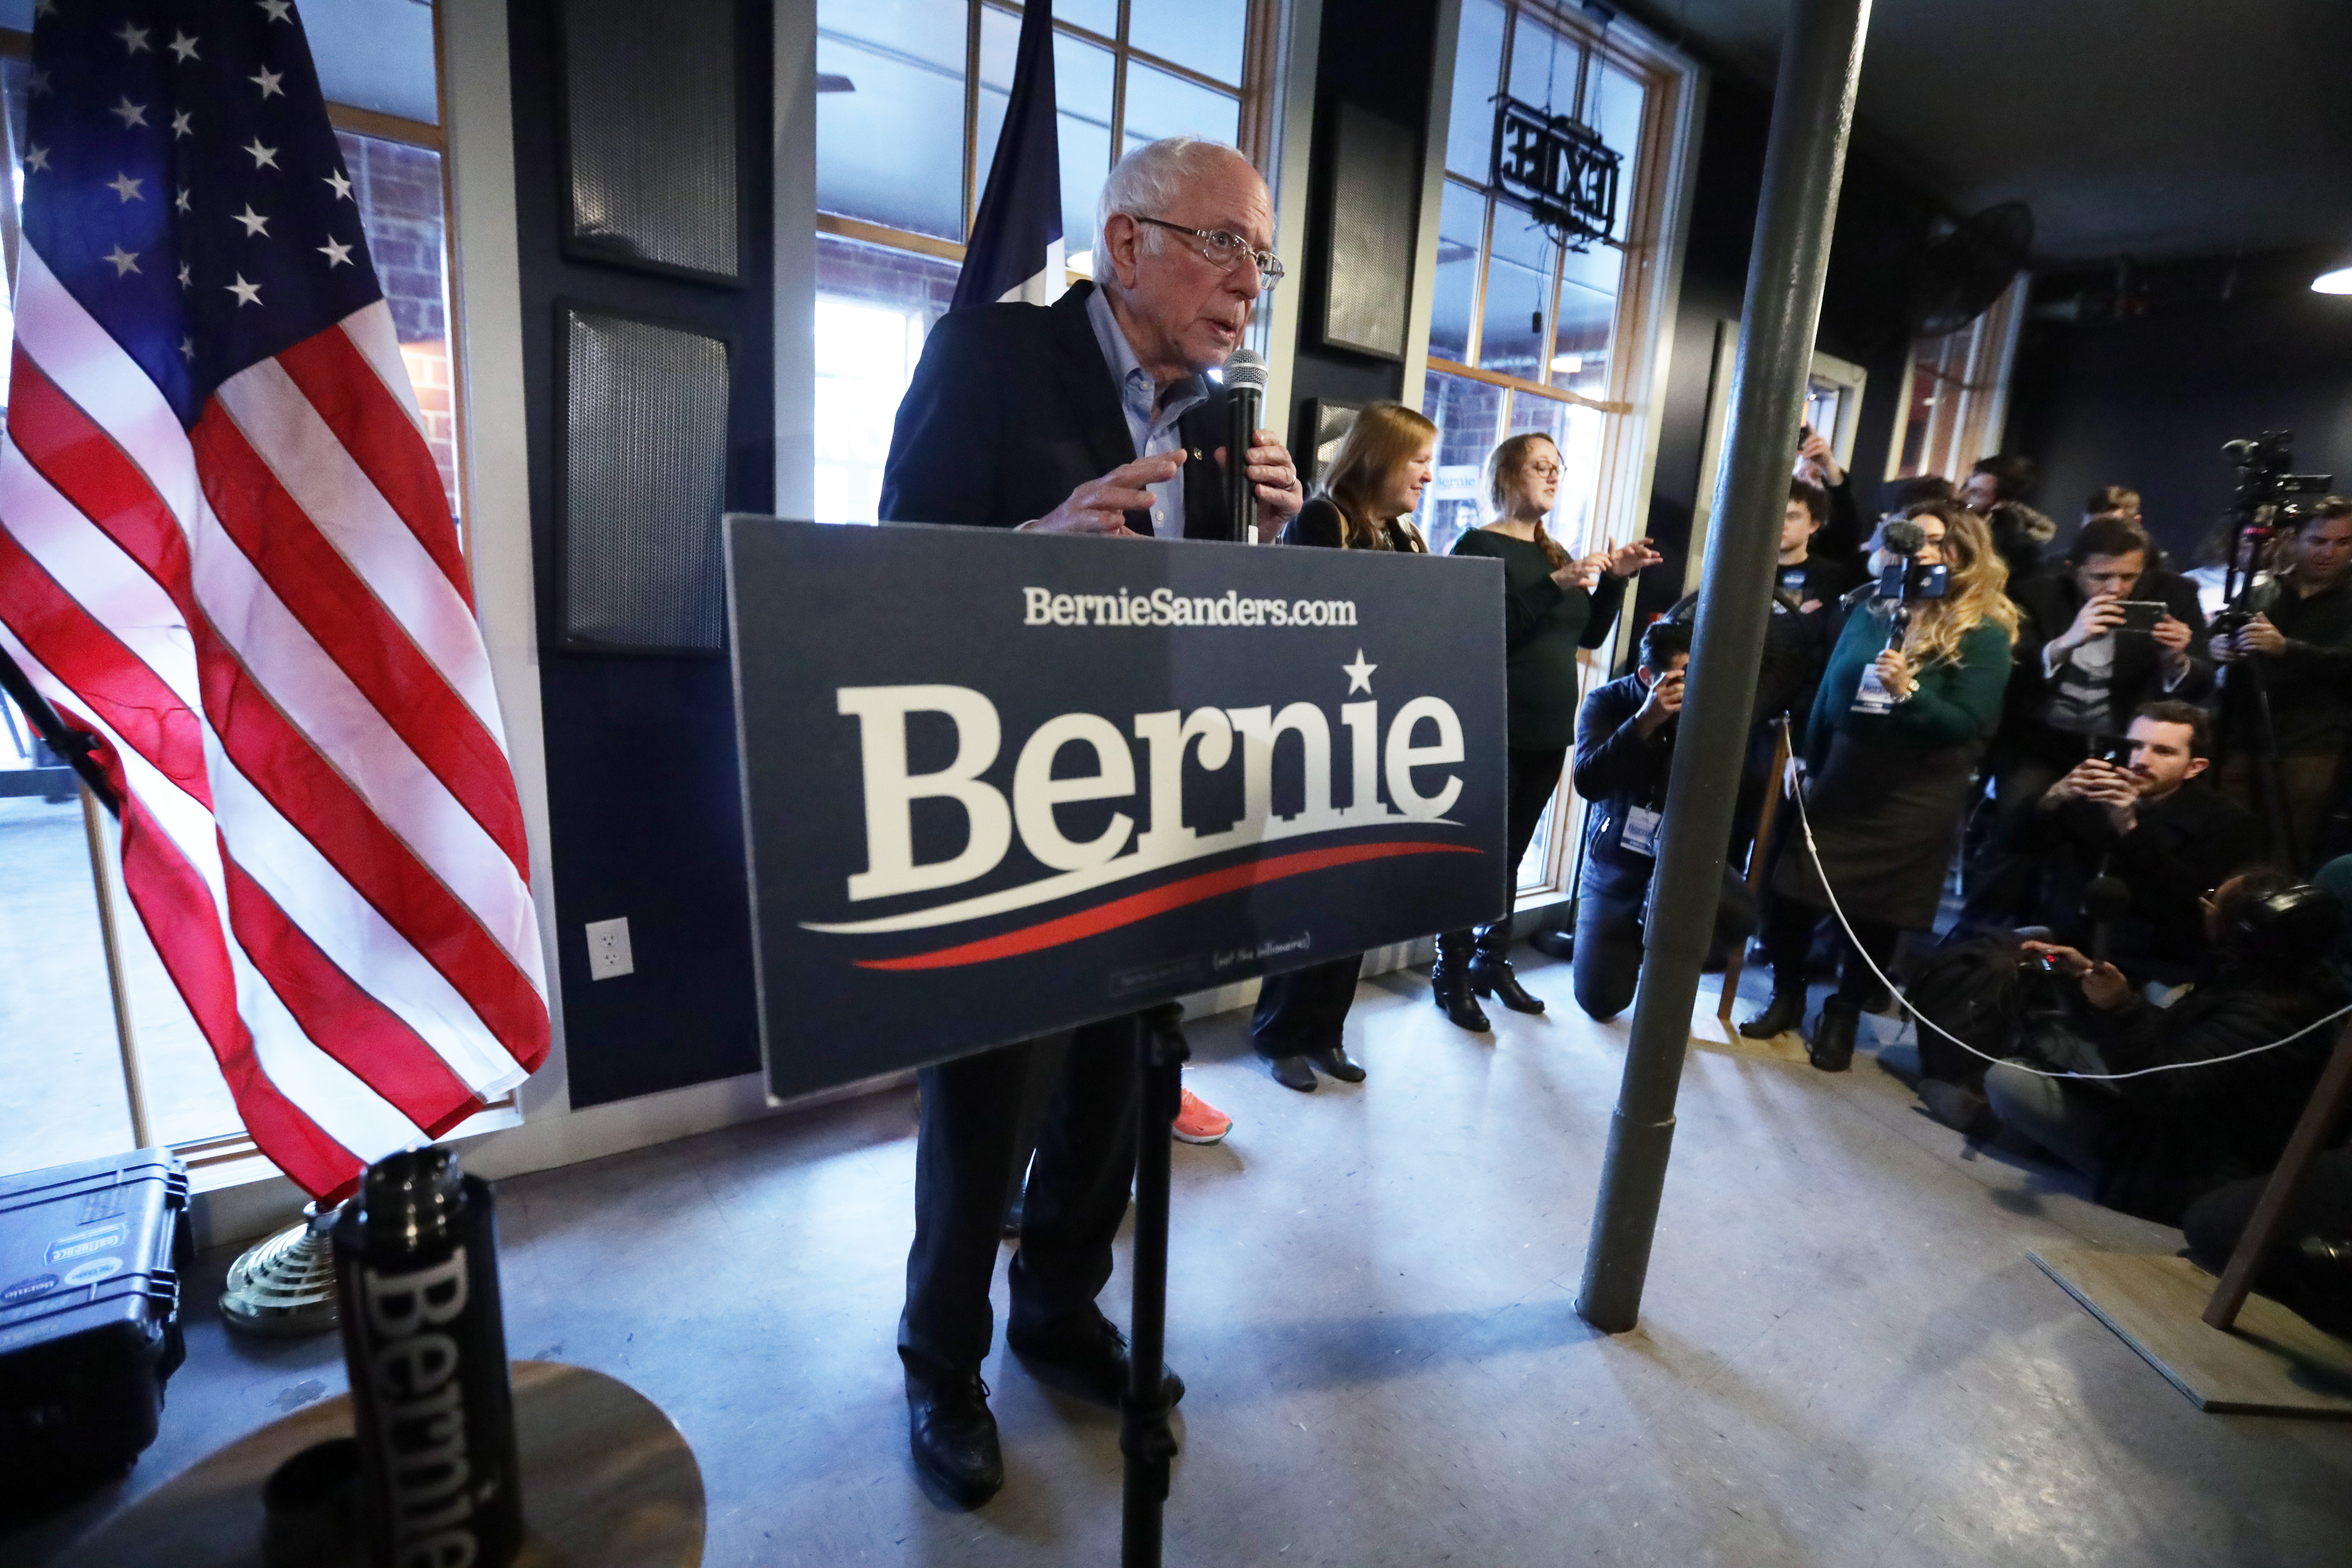 DES MOINES, - FEBRUARY 02: Democratic presidential candidate Sen. Bernie Sanders (I-VT) speaks during a campaign event at Ingersoll Tap February 2, 2020 in Des Moines, Iowa. The Iowa caucuses will be held on February 3. (Photo by Alex Wong/Getty Images)